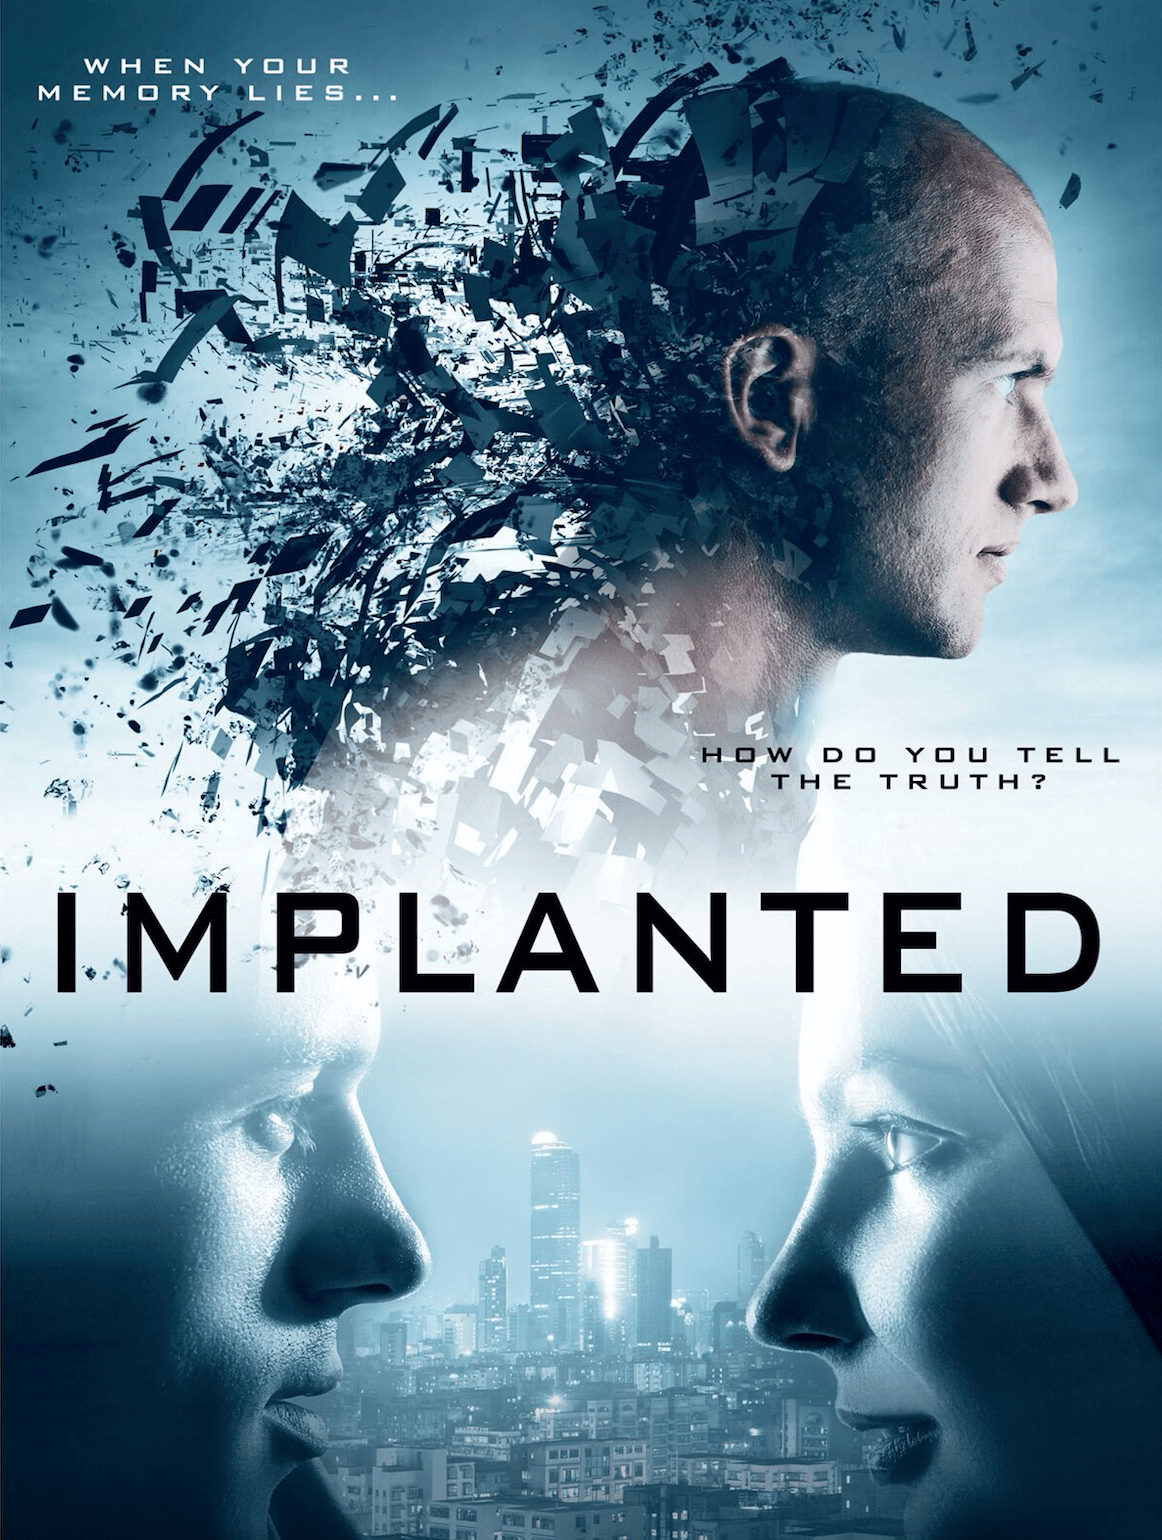 Implanted Artwork IMPLANTED